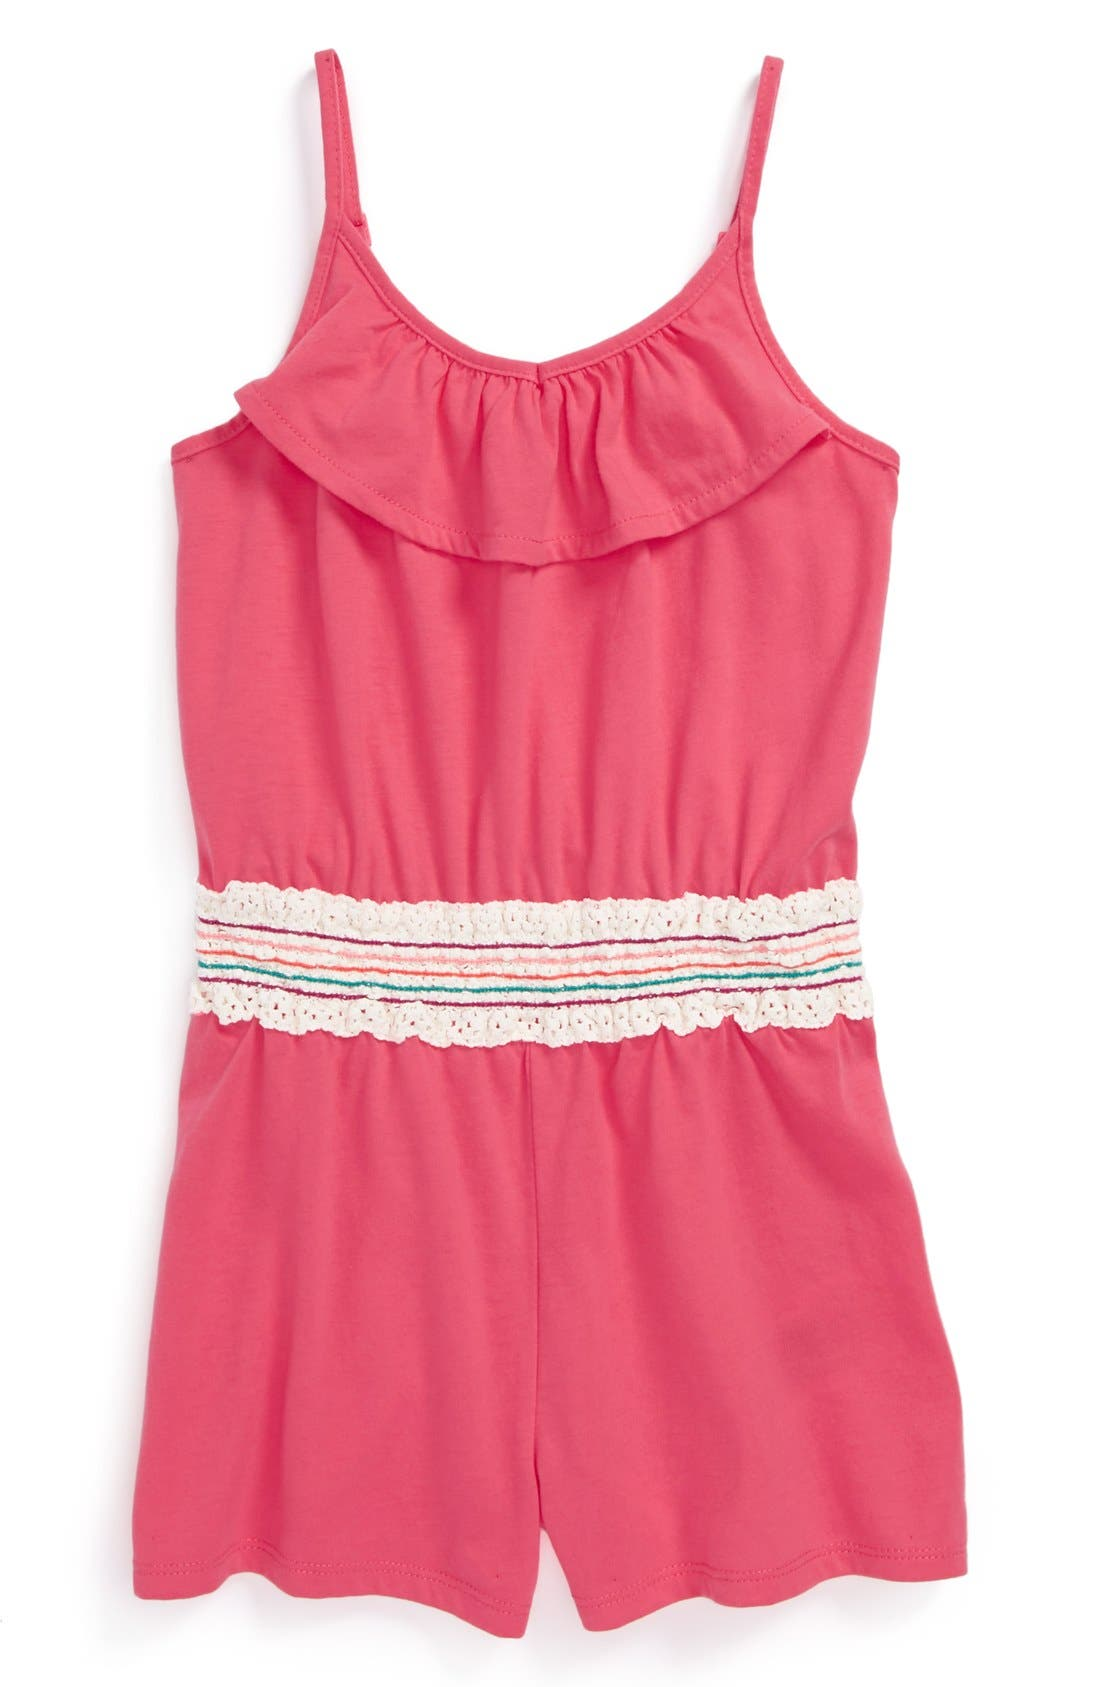 Main Image - Roxy 'Creekside' Romper (Little Girls & Big Girls)